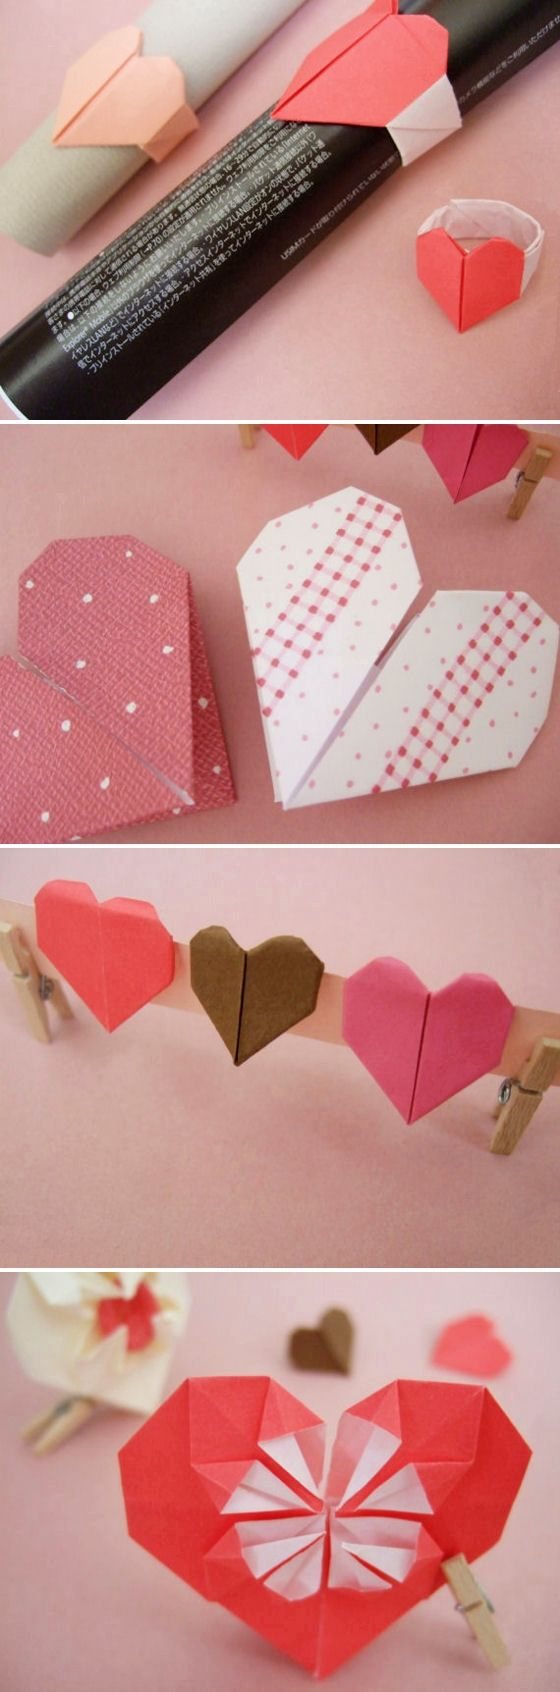 DIY: origami hearts, show your heart to your lover